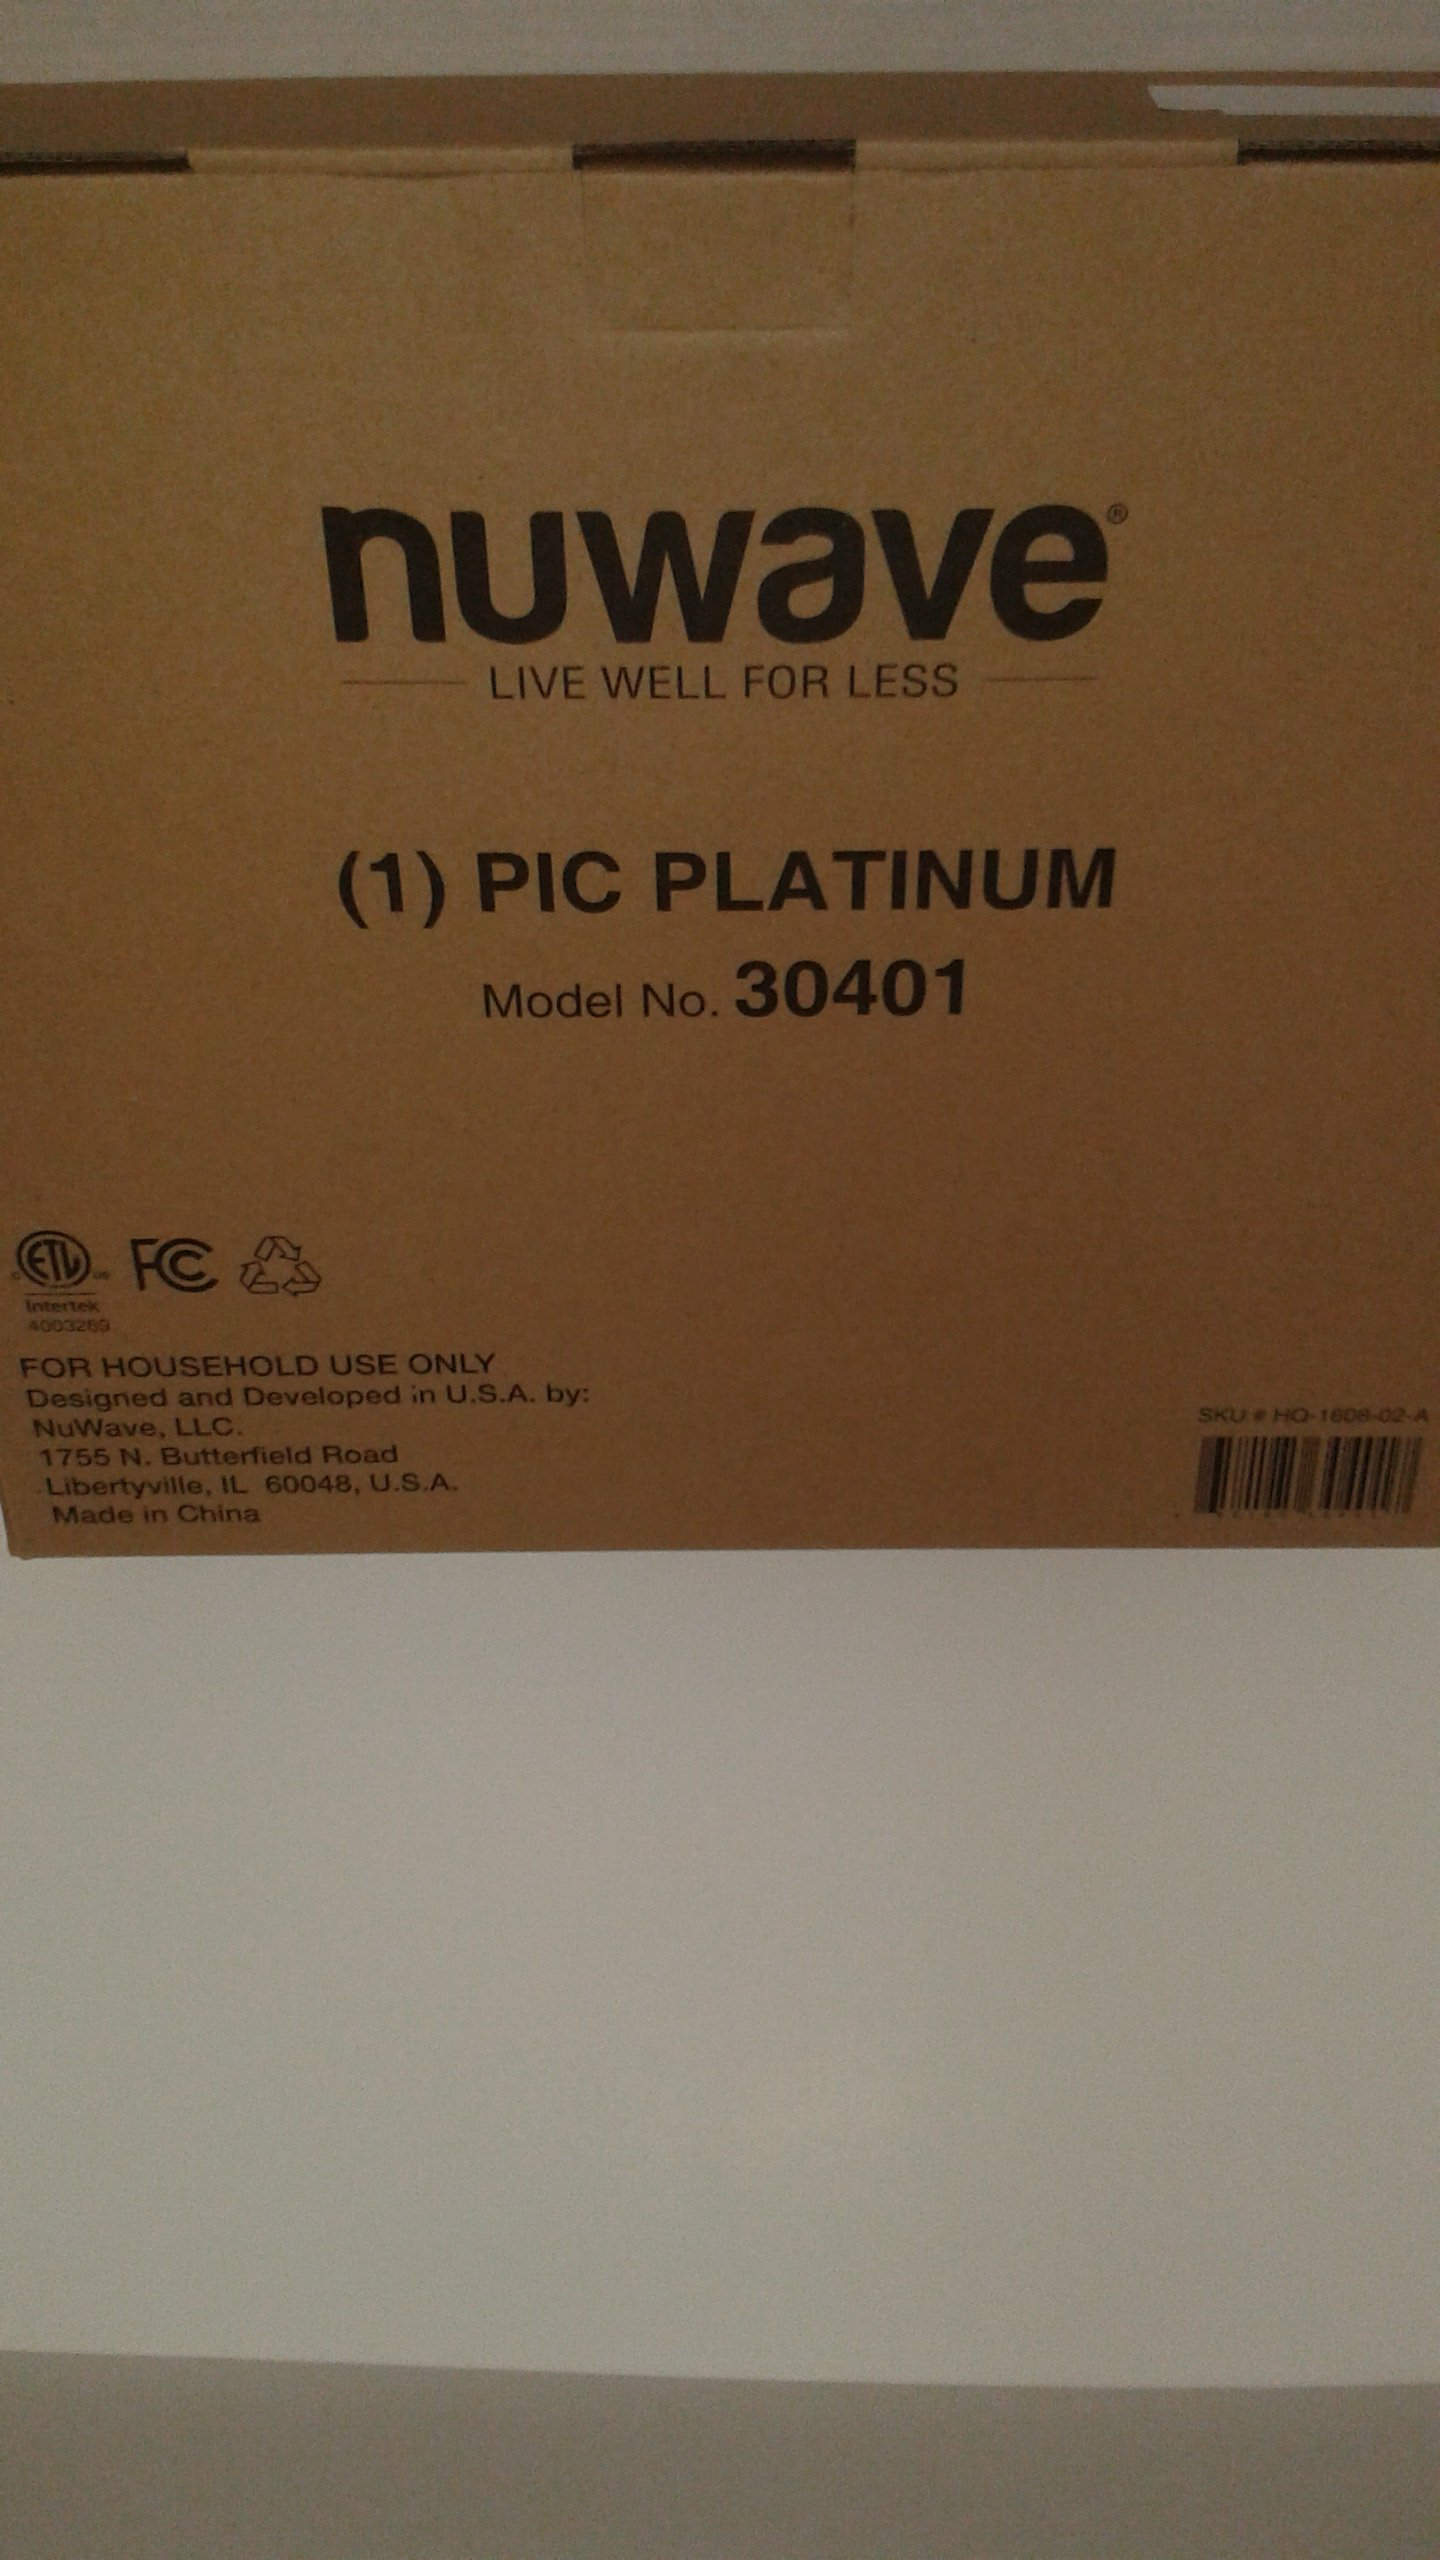 NuWave Platinum 30401 Precision Induction Cooktop, Black with Remote and Advanced Features for 2017 by NuWave (Image #4)